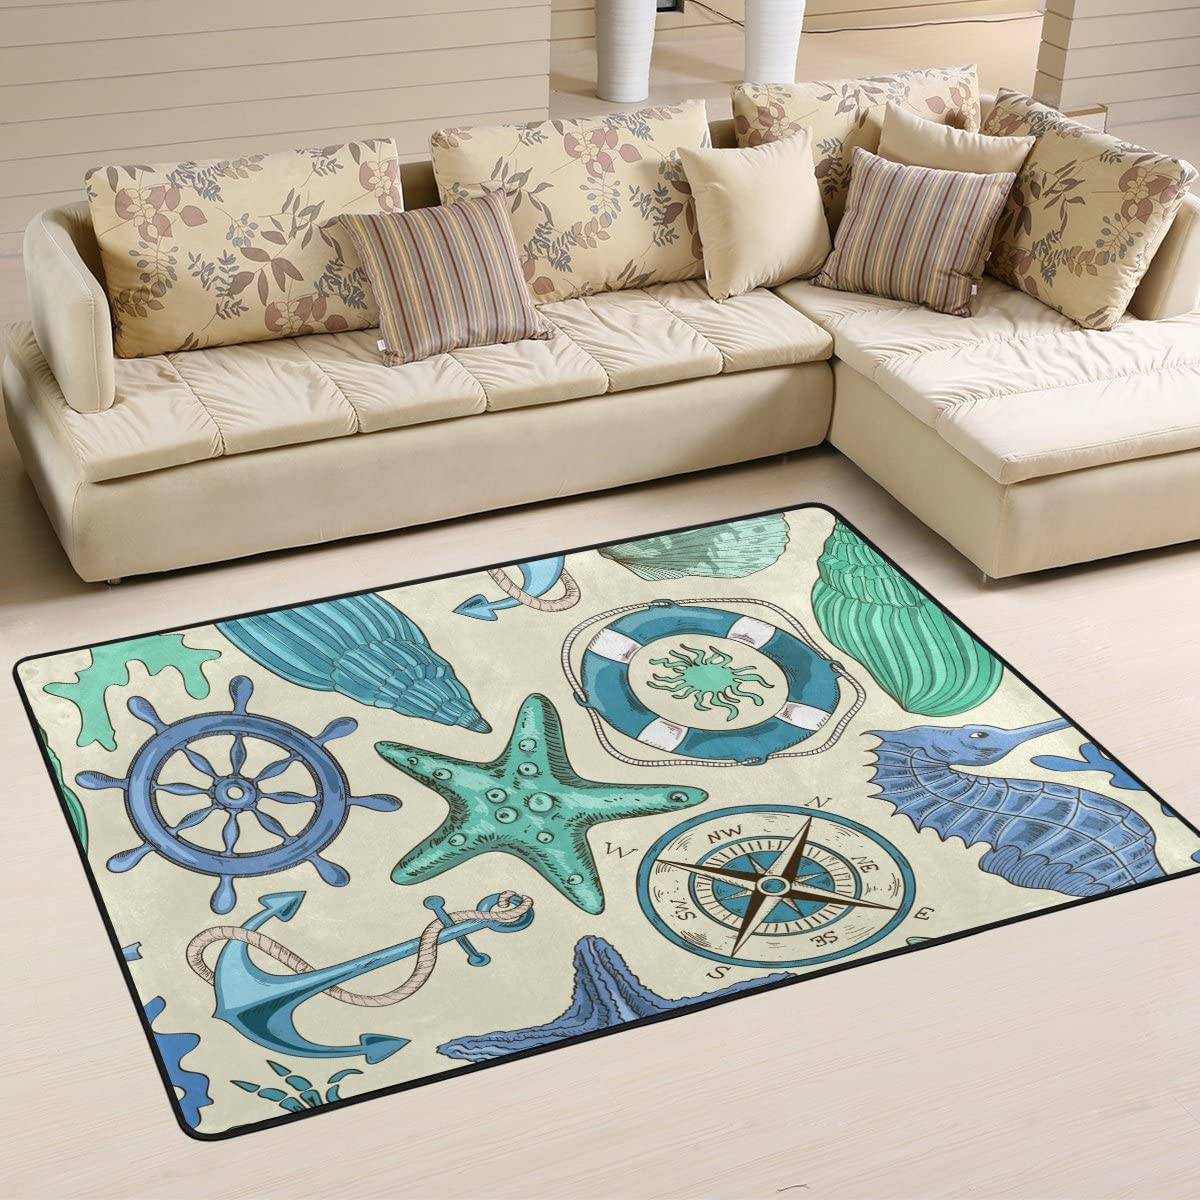 LORVIES Sea Animals and Nautical Elements Area Rug Carpet Non-Slip Floor Mat Doormats for Living Room Bedroom 72 x 48 inches